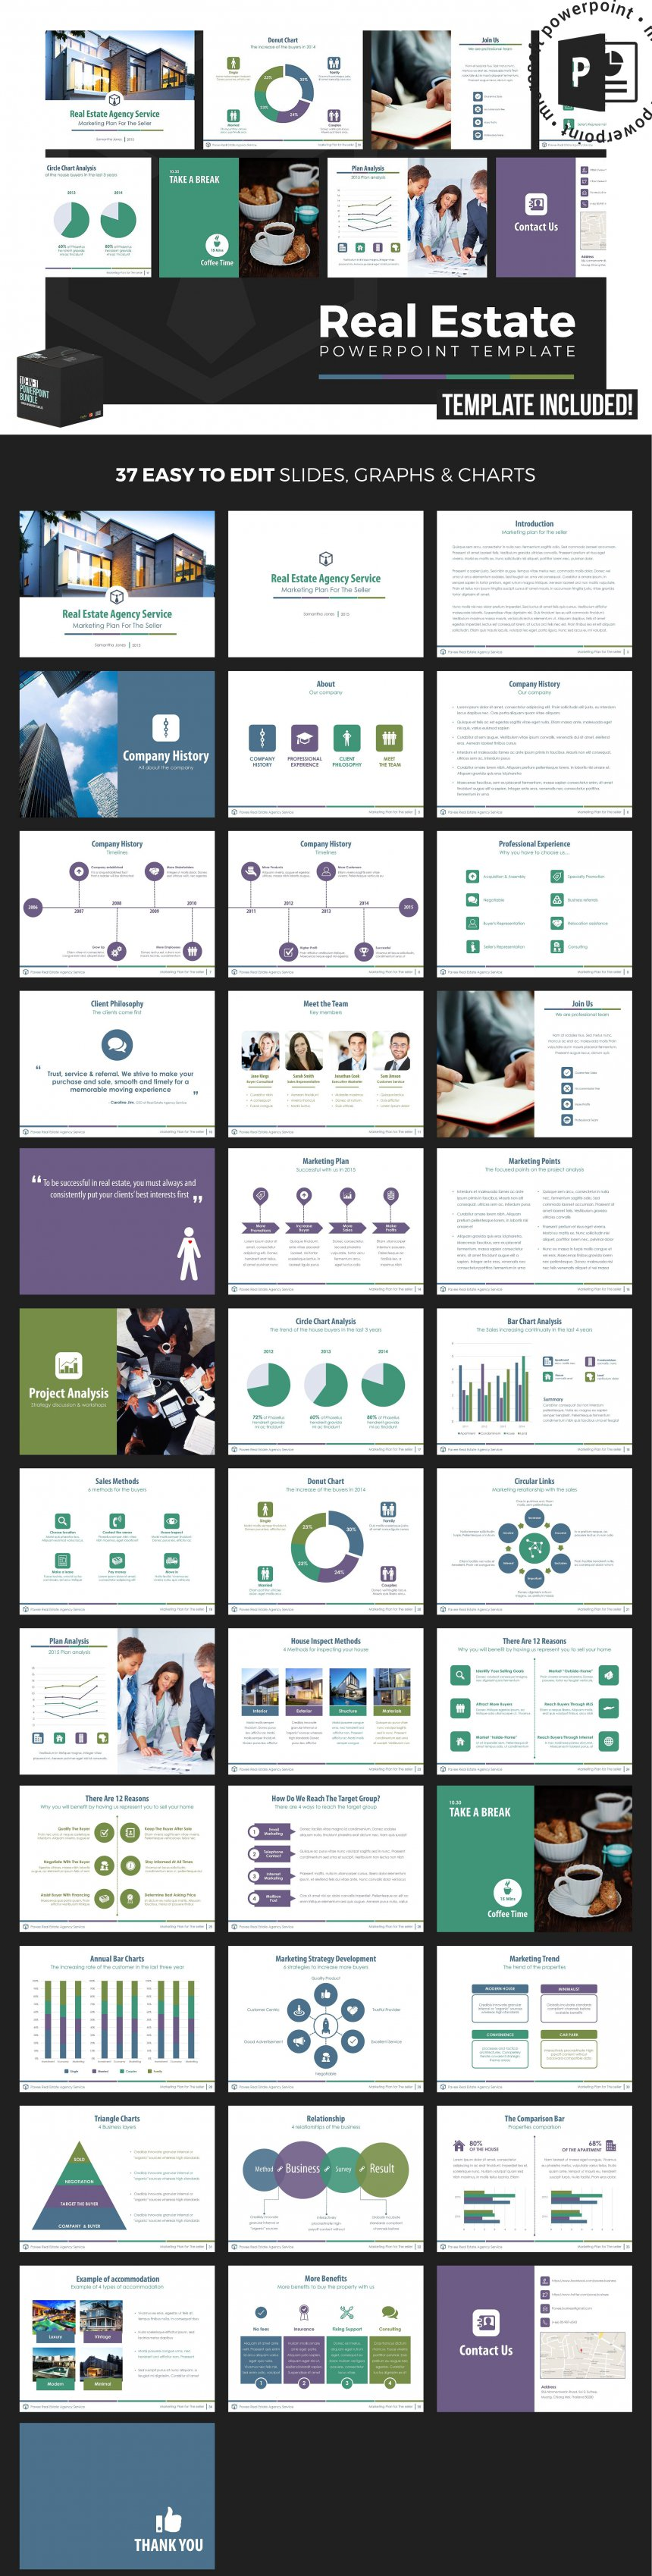 10 creative and professional powerpoint templates plus bonuses real estate powerpoint template toneelgroepblik Image collections